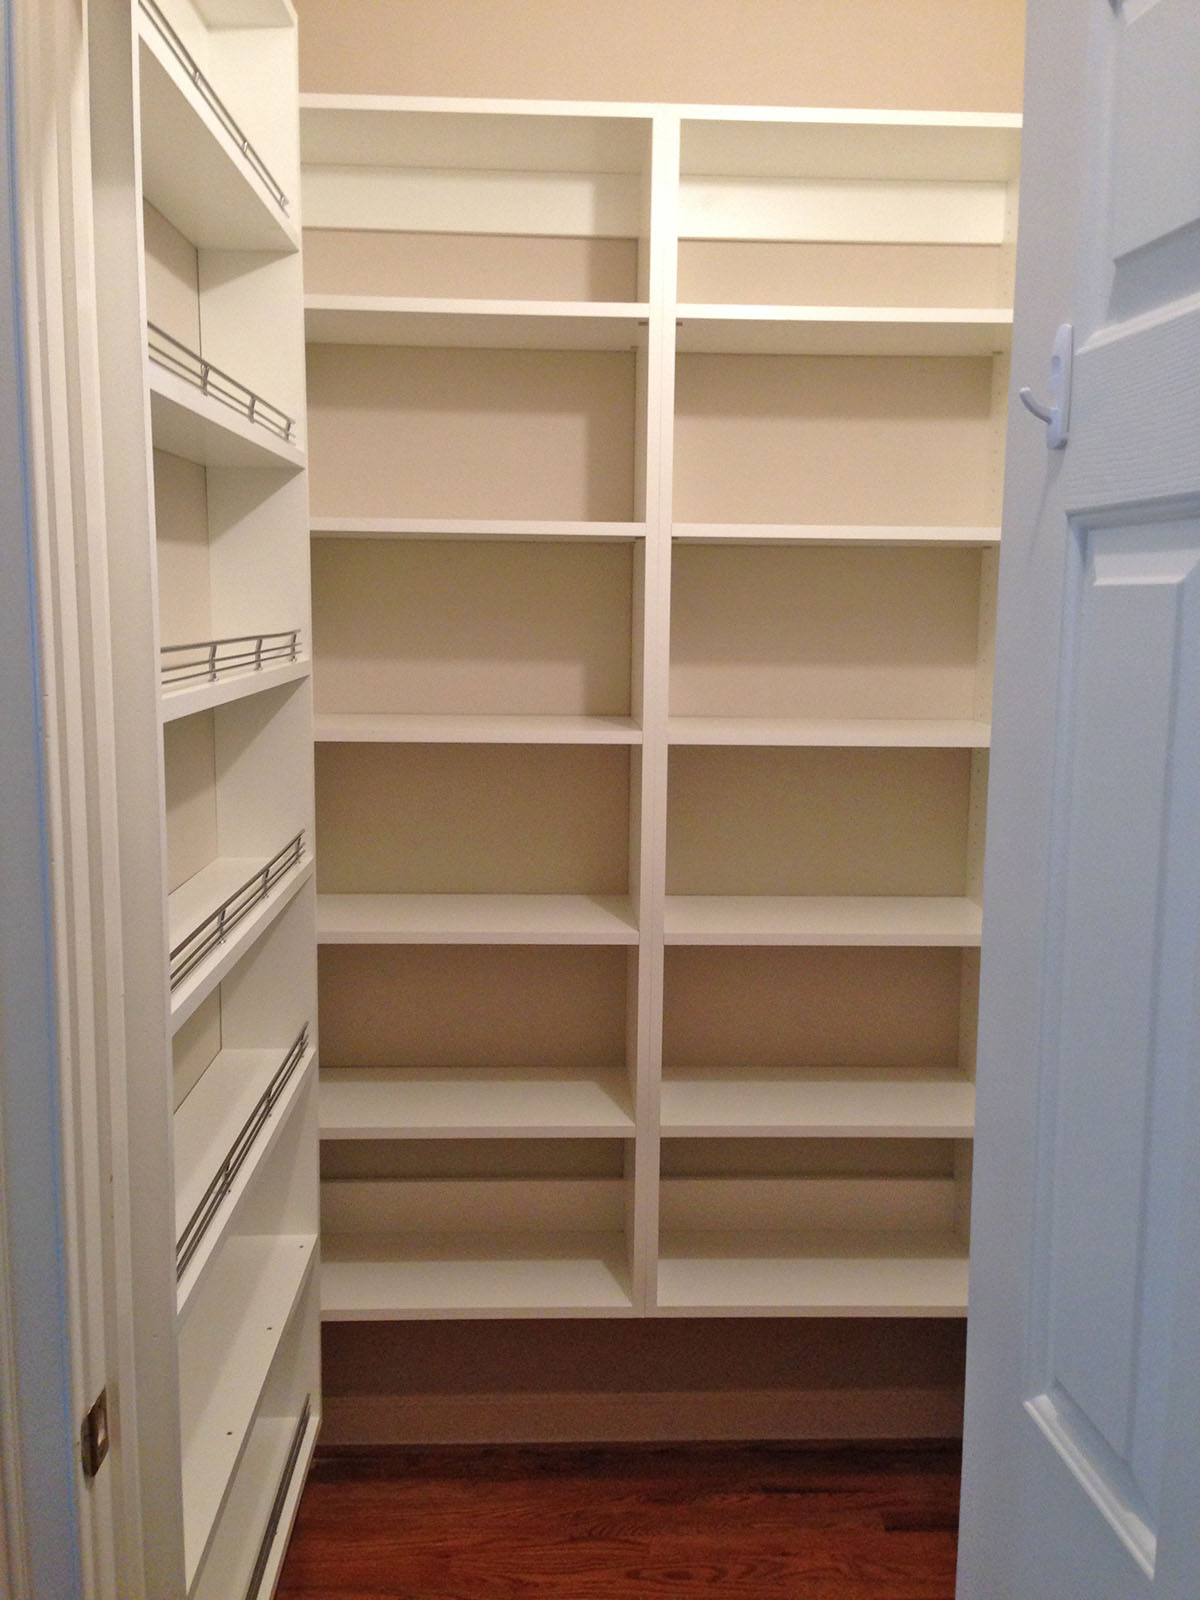 organizers or disorganized best cluttered is storage pin kitchen into larder ideas pantrys and turn your these with a pantries pantry great nightmare dream cabinets